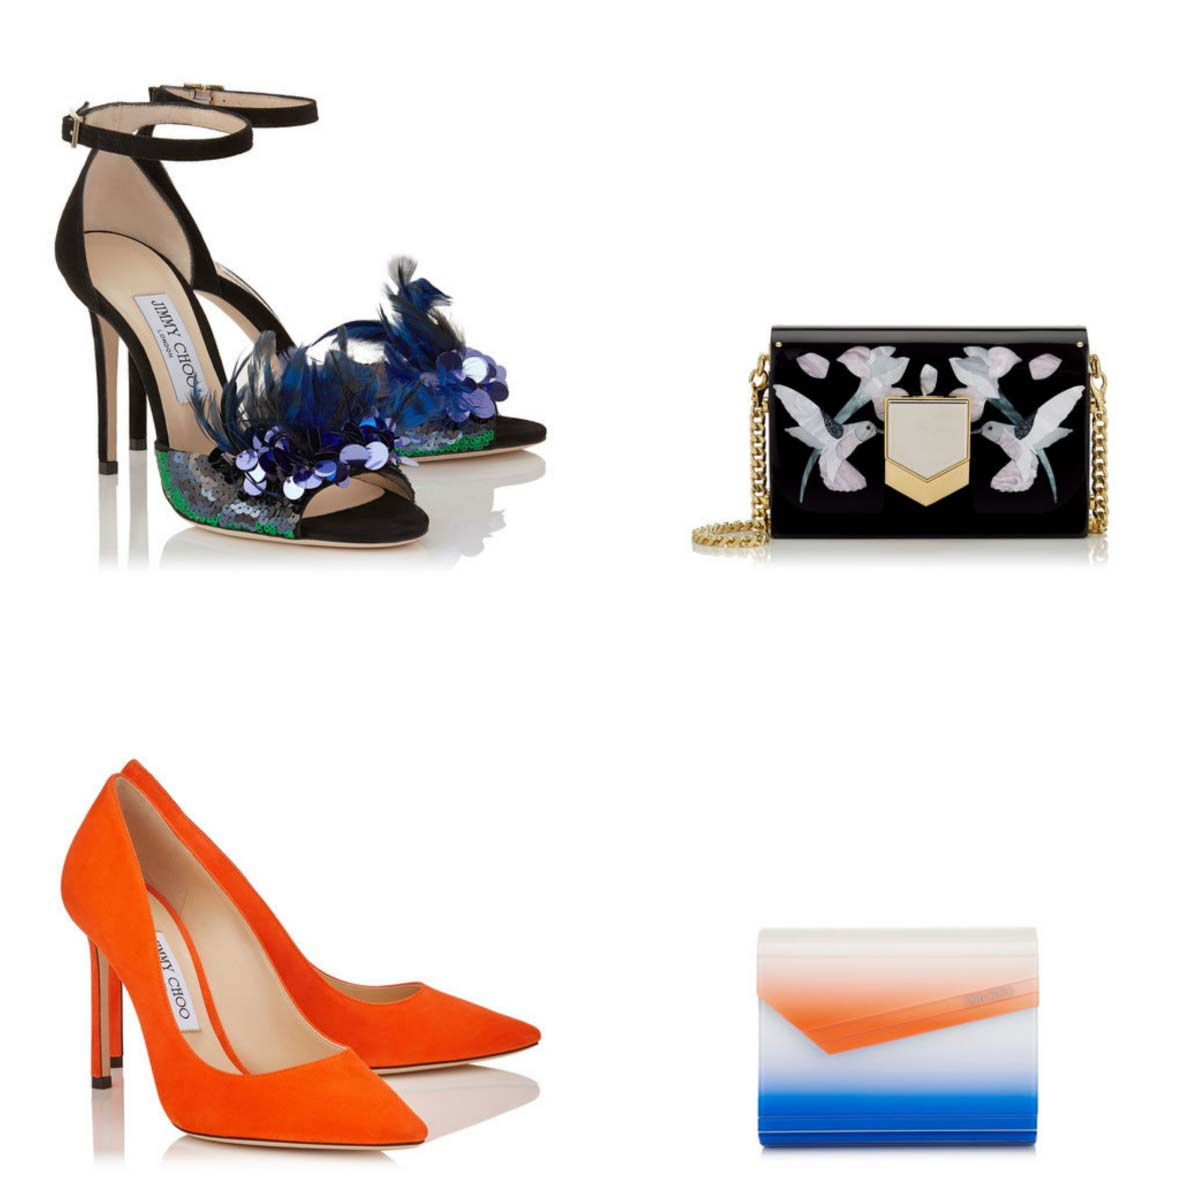 Jimmy Choo Latest Shoes and Handbags Collection 2017-2018 (3)